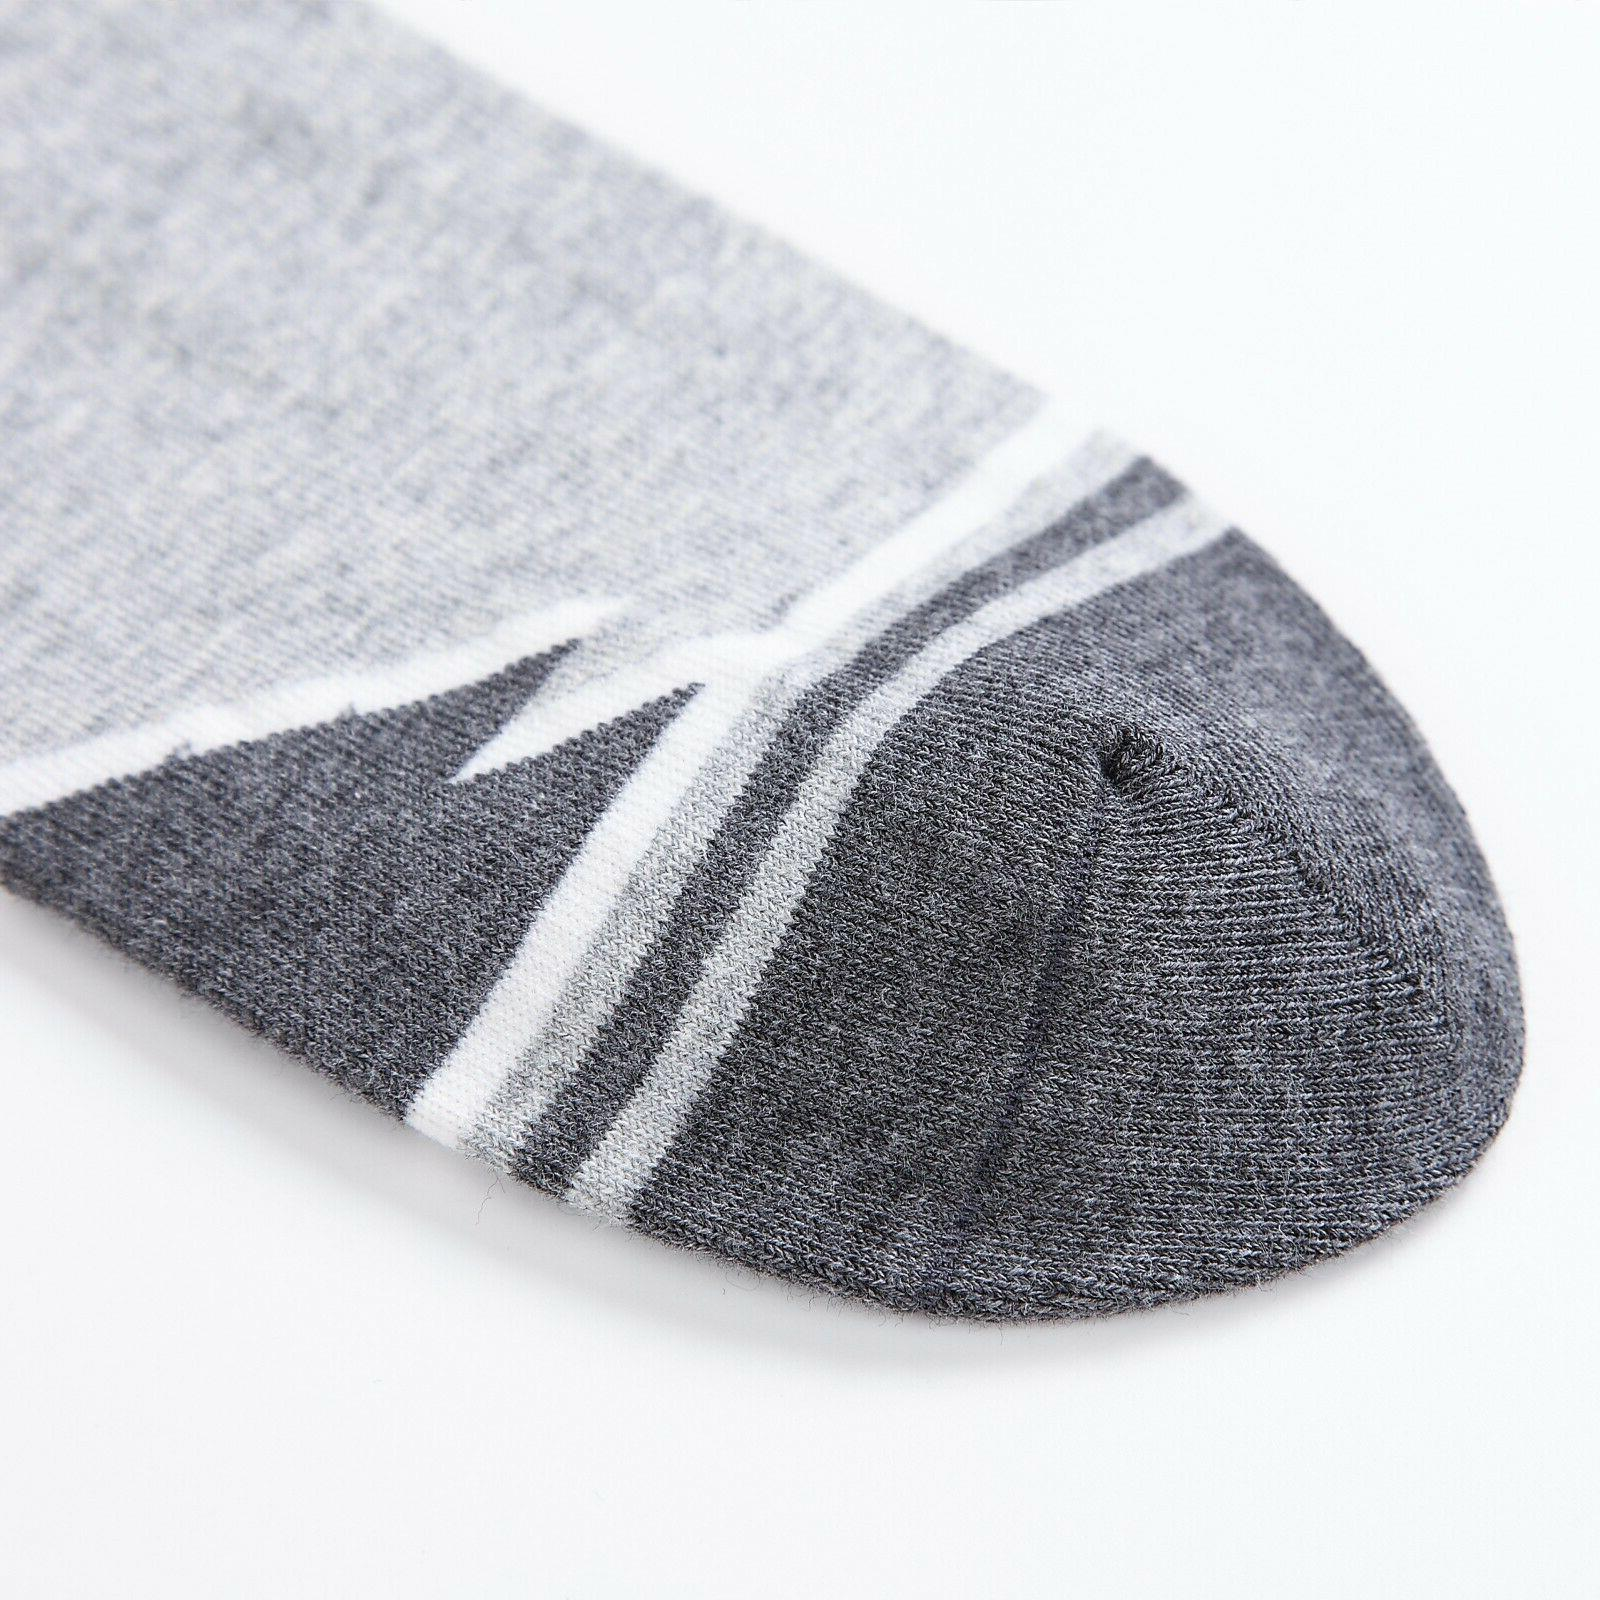 6 Cut Ankle Stripe Socks,100% Cotton